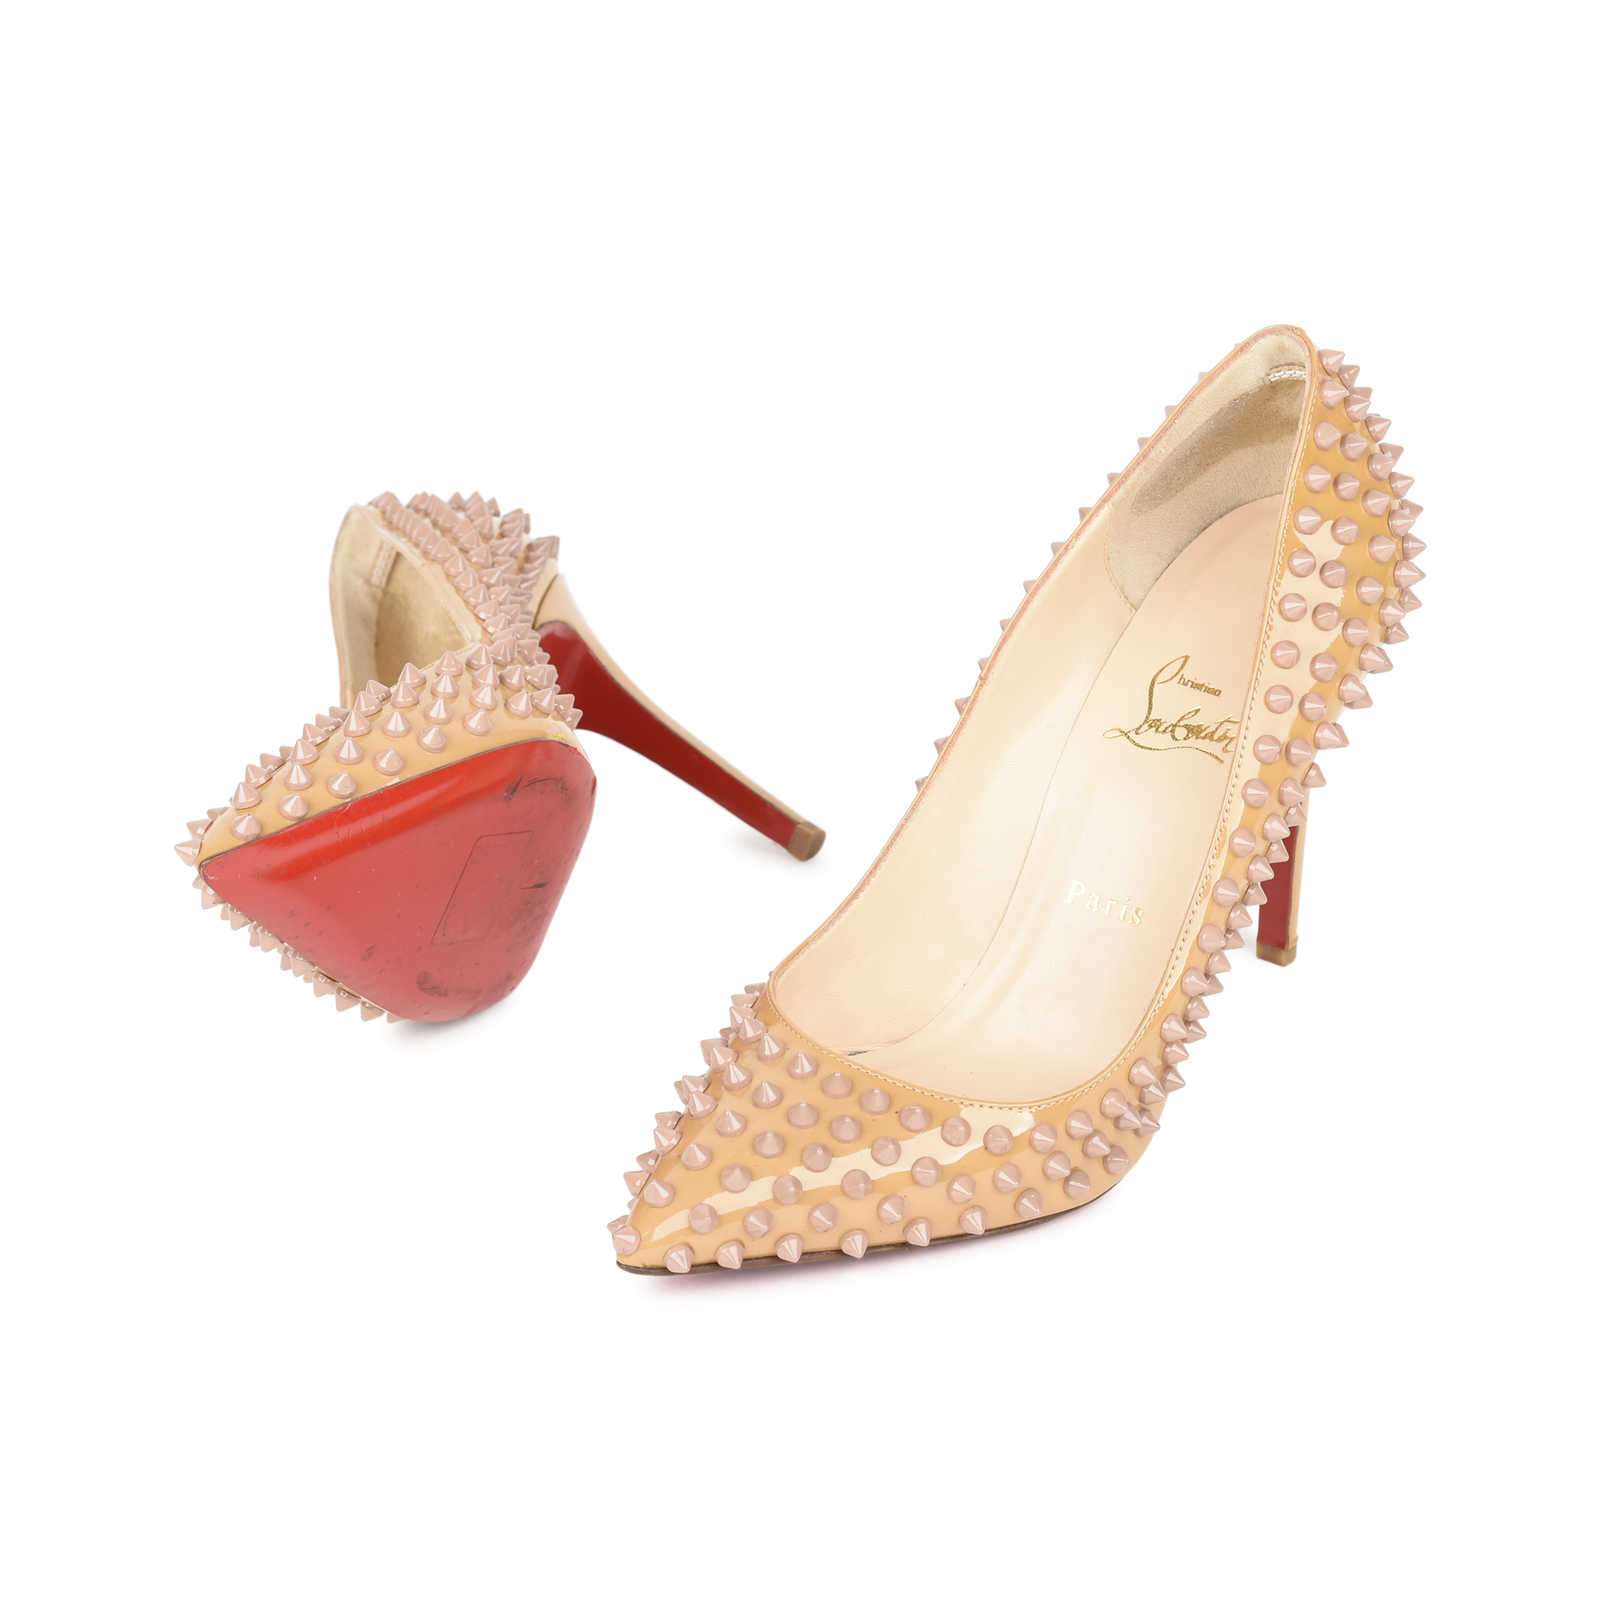 ... Authentic Pre Owned Christian Louboutin Pigalle Spike Pumps (PSS-532- 00002) ... a375dd0b3d